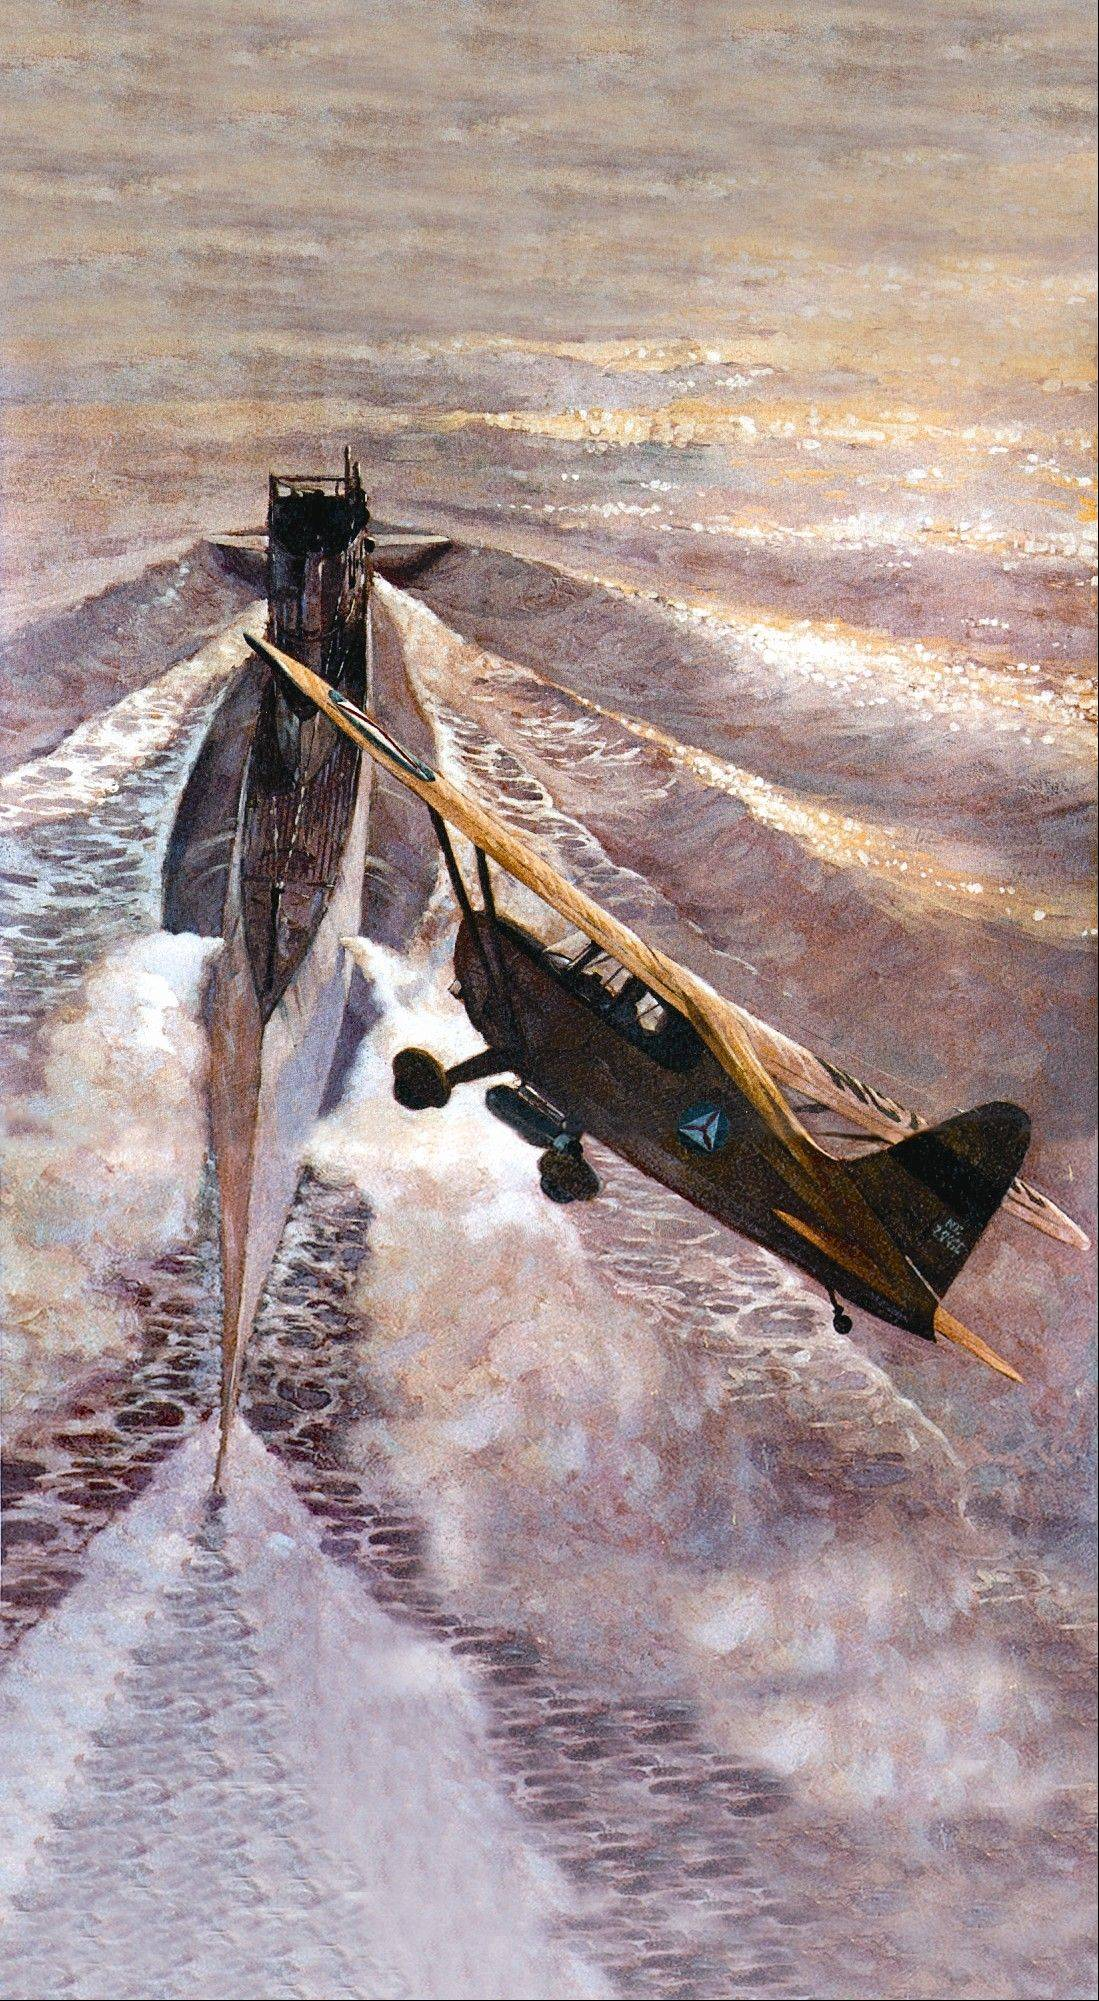 This painting depicts a World War II sub-chasing mission of the volunteer civilian group now known as the Civil Air Patrol.